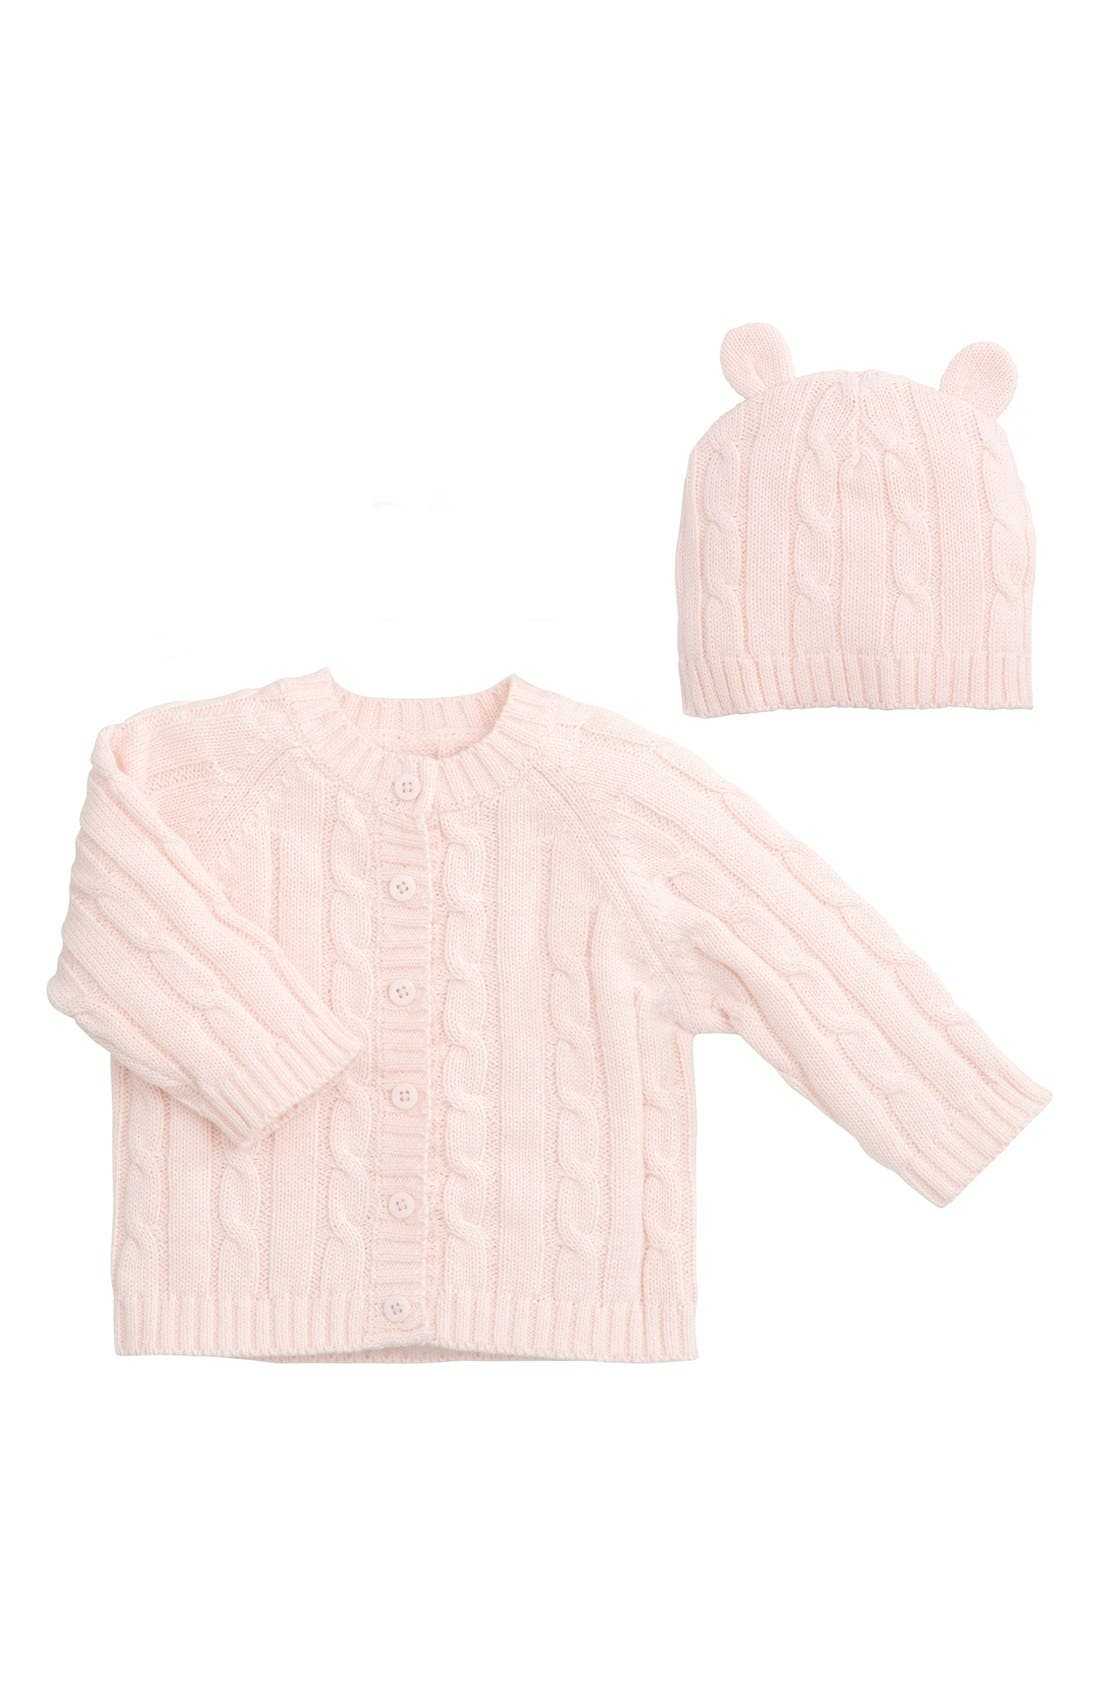 Cable Knit Sweater & Hat Set,                         Main,                         color, Light Pink